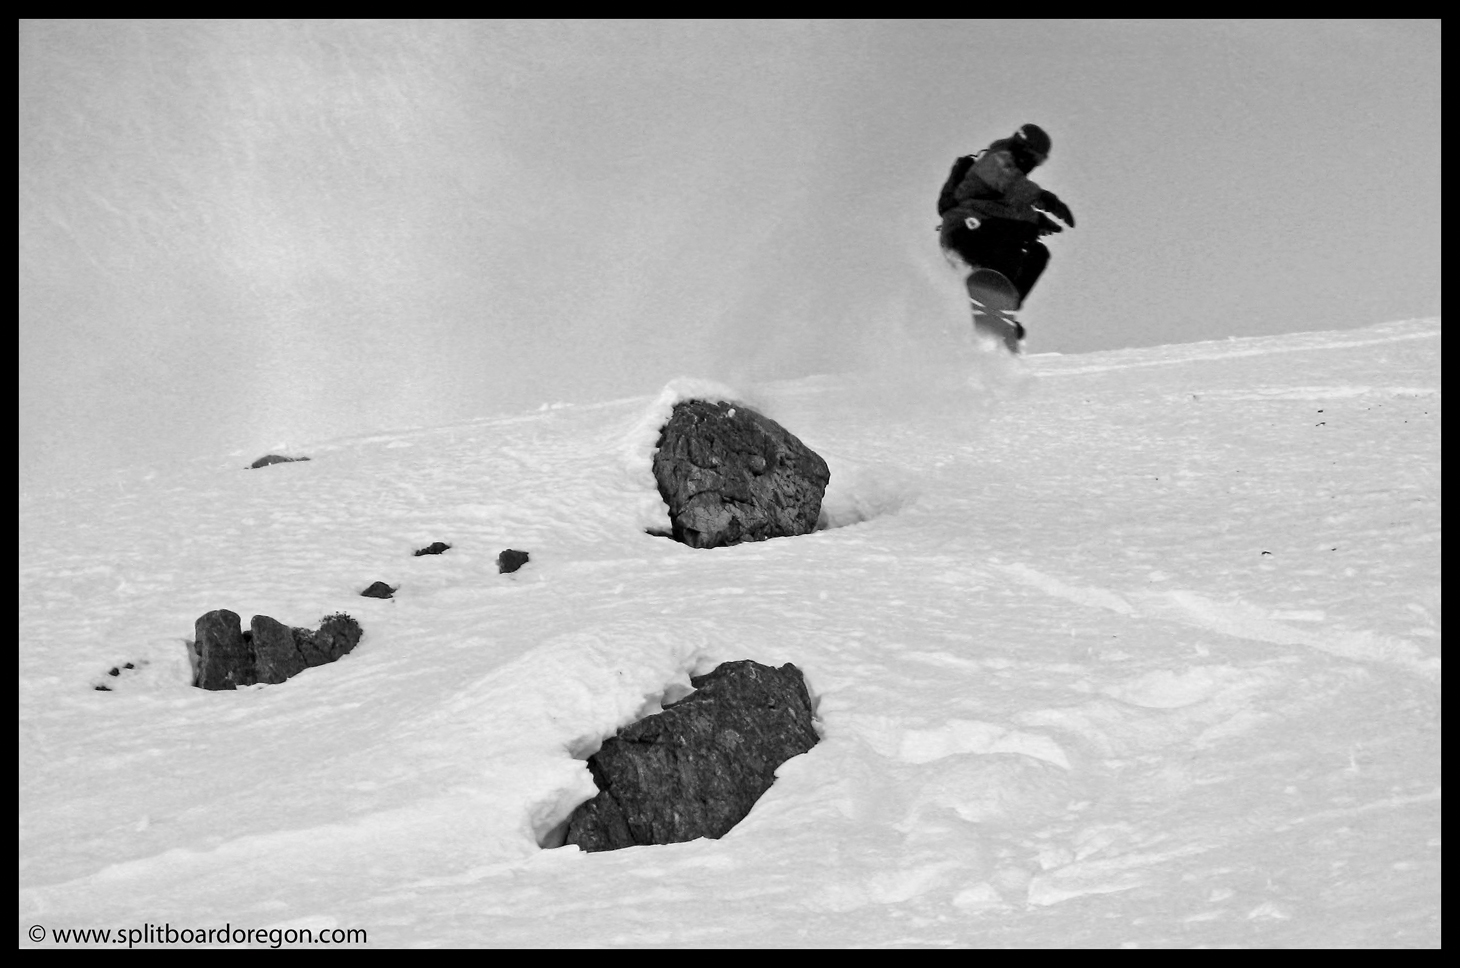 Matt dropping a small rock on Whistler Mountain